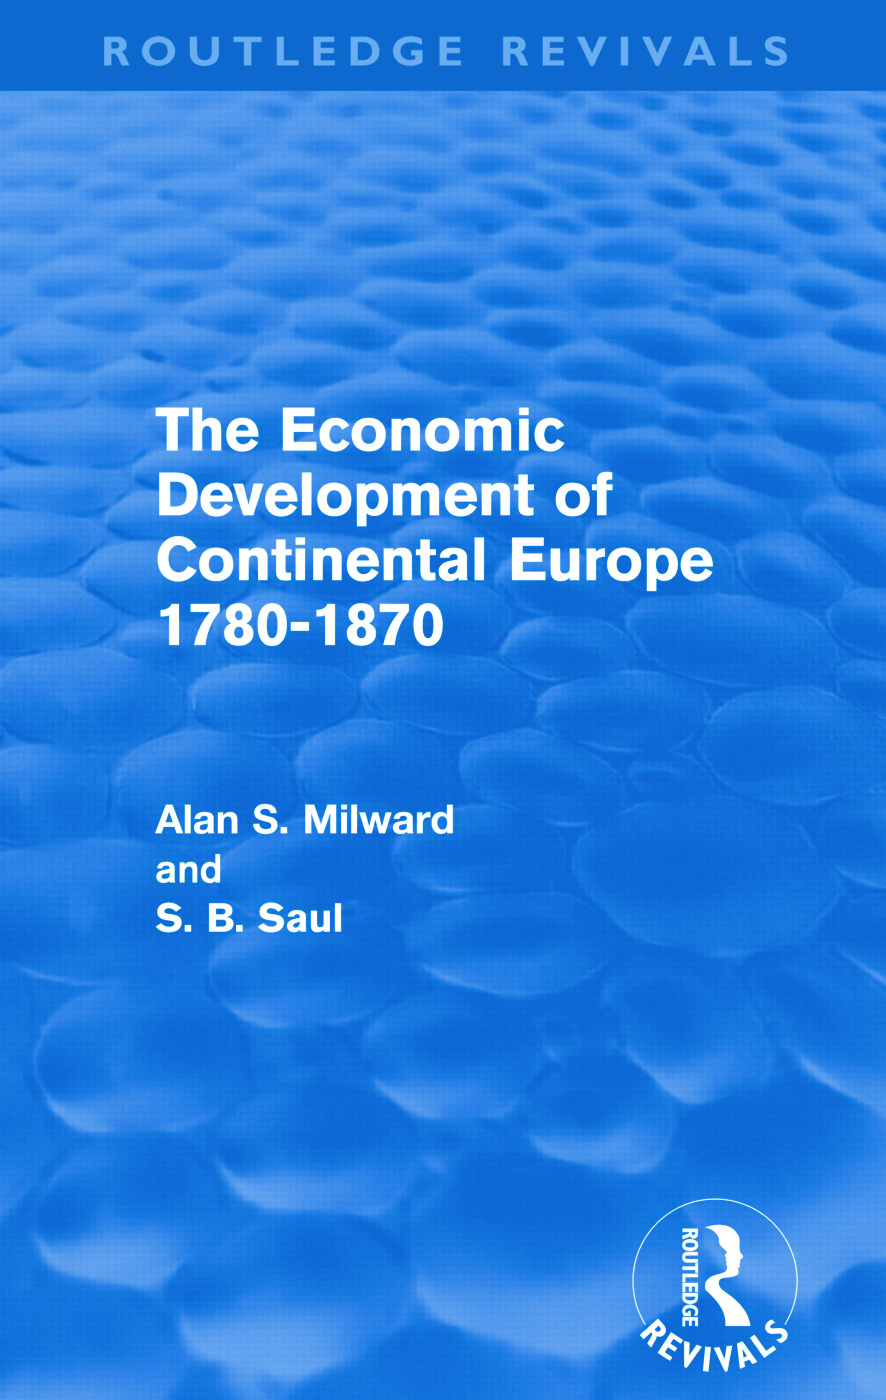 The Economic Development of Continental Europe 1780-1870 (Routledge Revivals) (Paperback) book cover